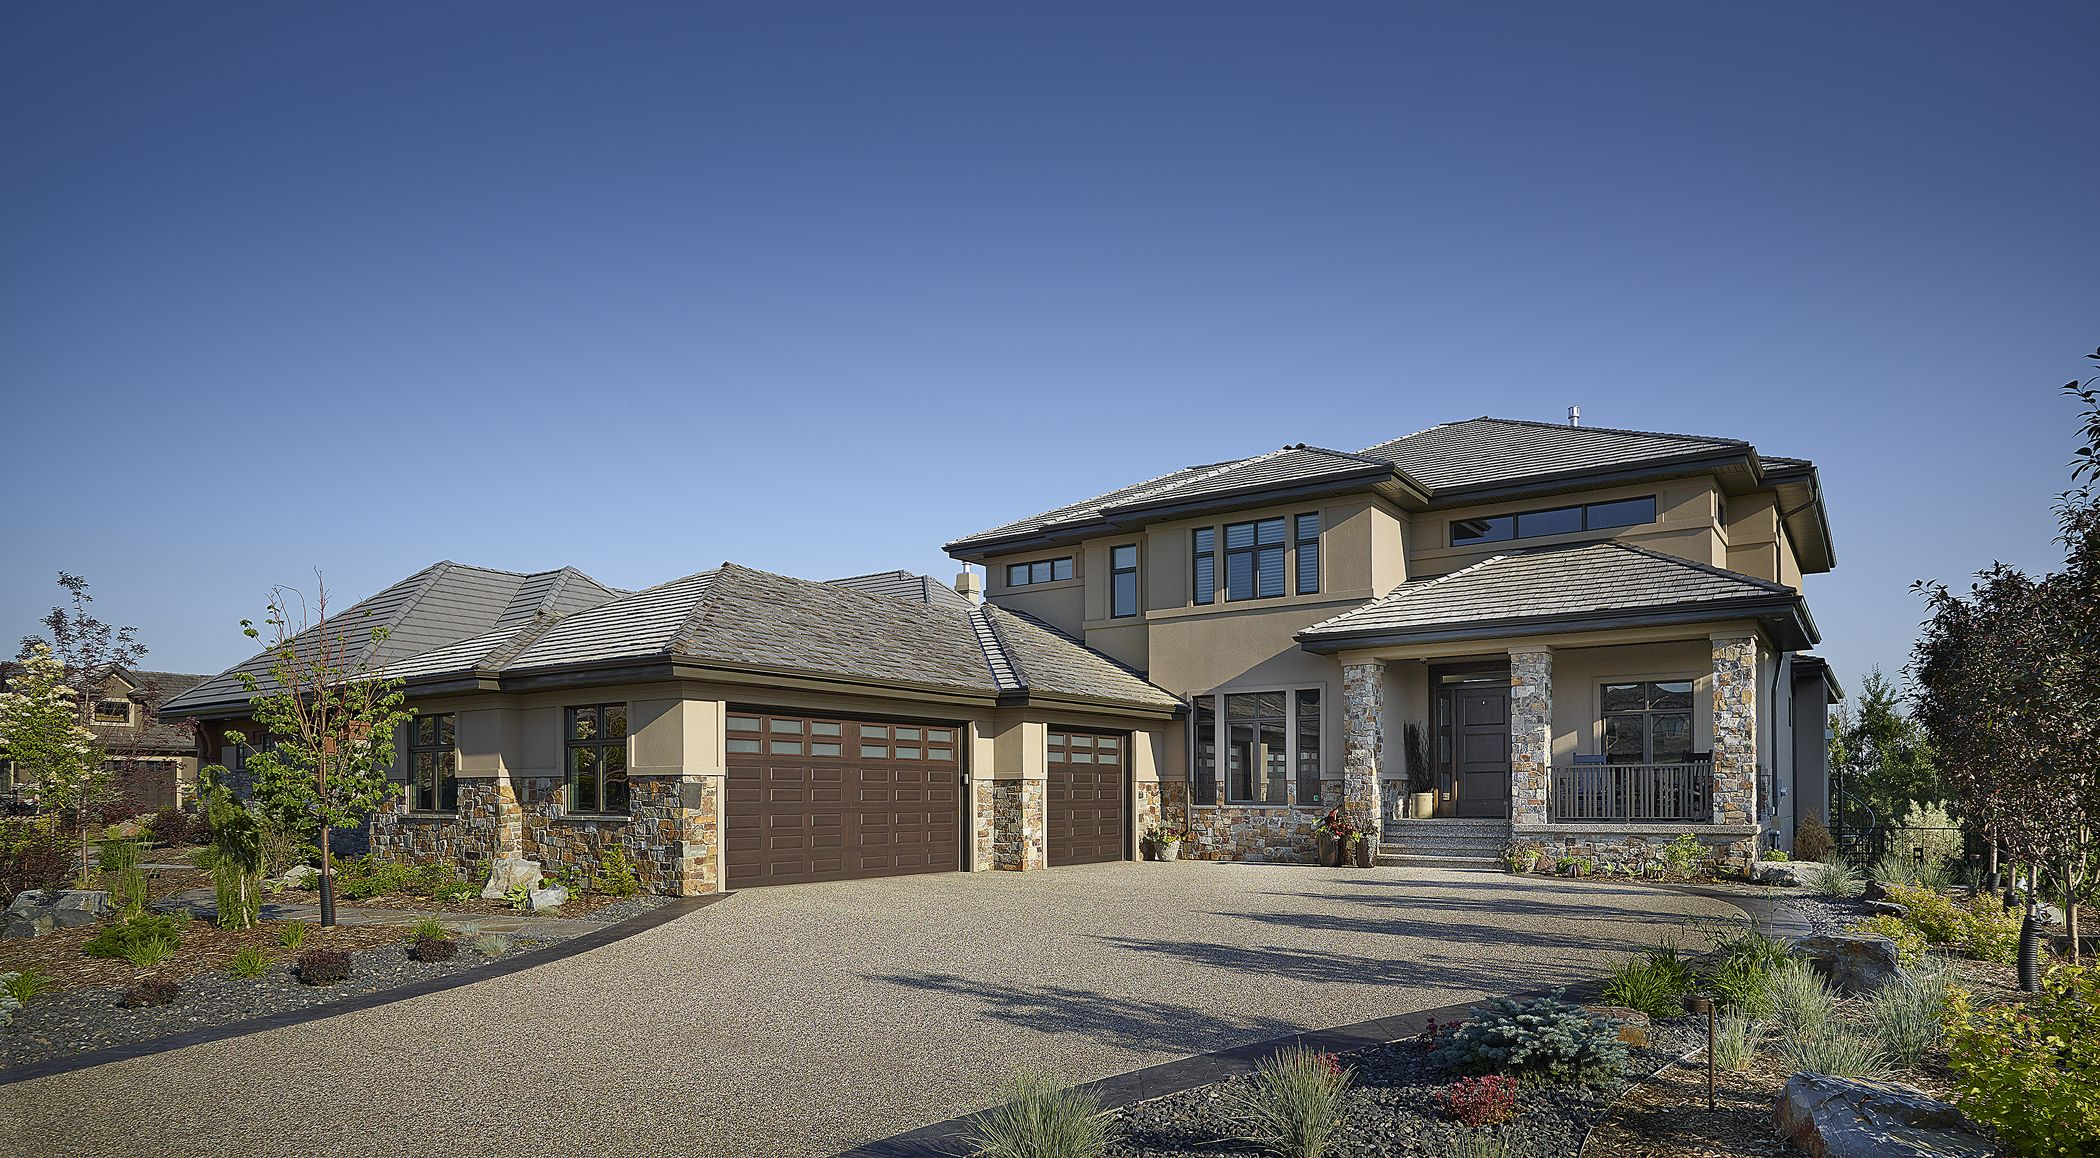 Custom Built Home By Birkholz Homes In Edmonton Ab Custom Built Homes House Exterior House Styles